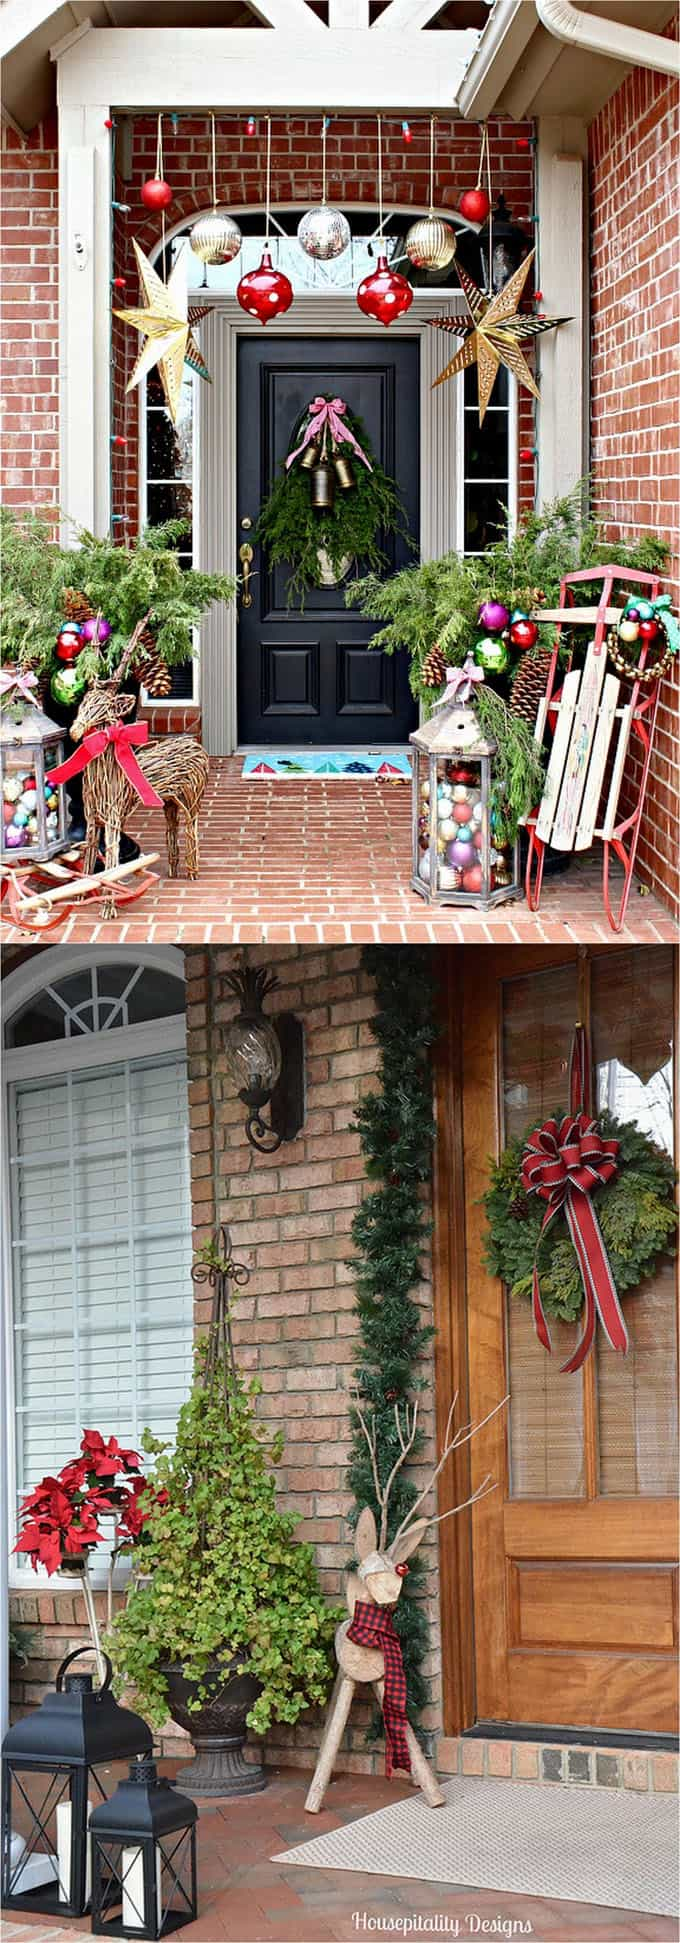 Reindeers sleighs and jingle bells make lovely outdoor Christmas decorations too! ( via Dimples u0026 Tangles | Hospitality Designs ) Continue To Next Pageu2026 & Gorgeous Outdoor Christmas Decorations: 32 Best Ideas u0026 Tutorials ...